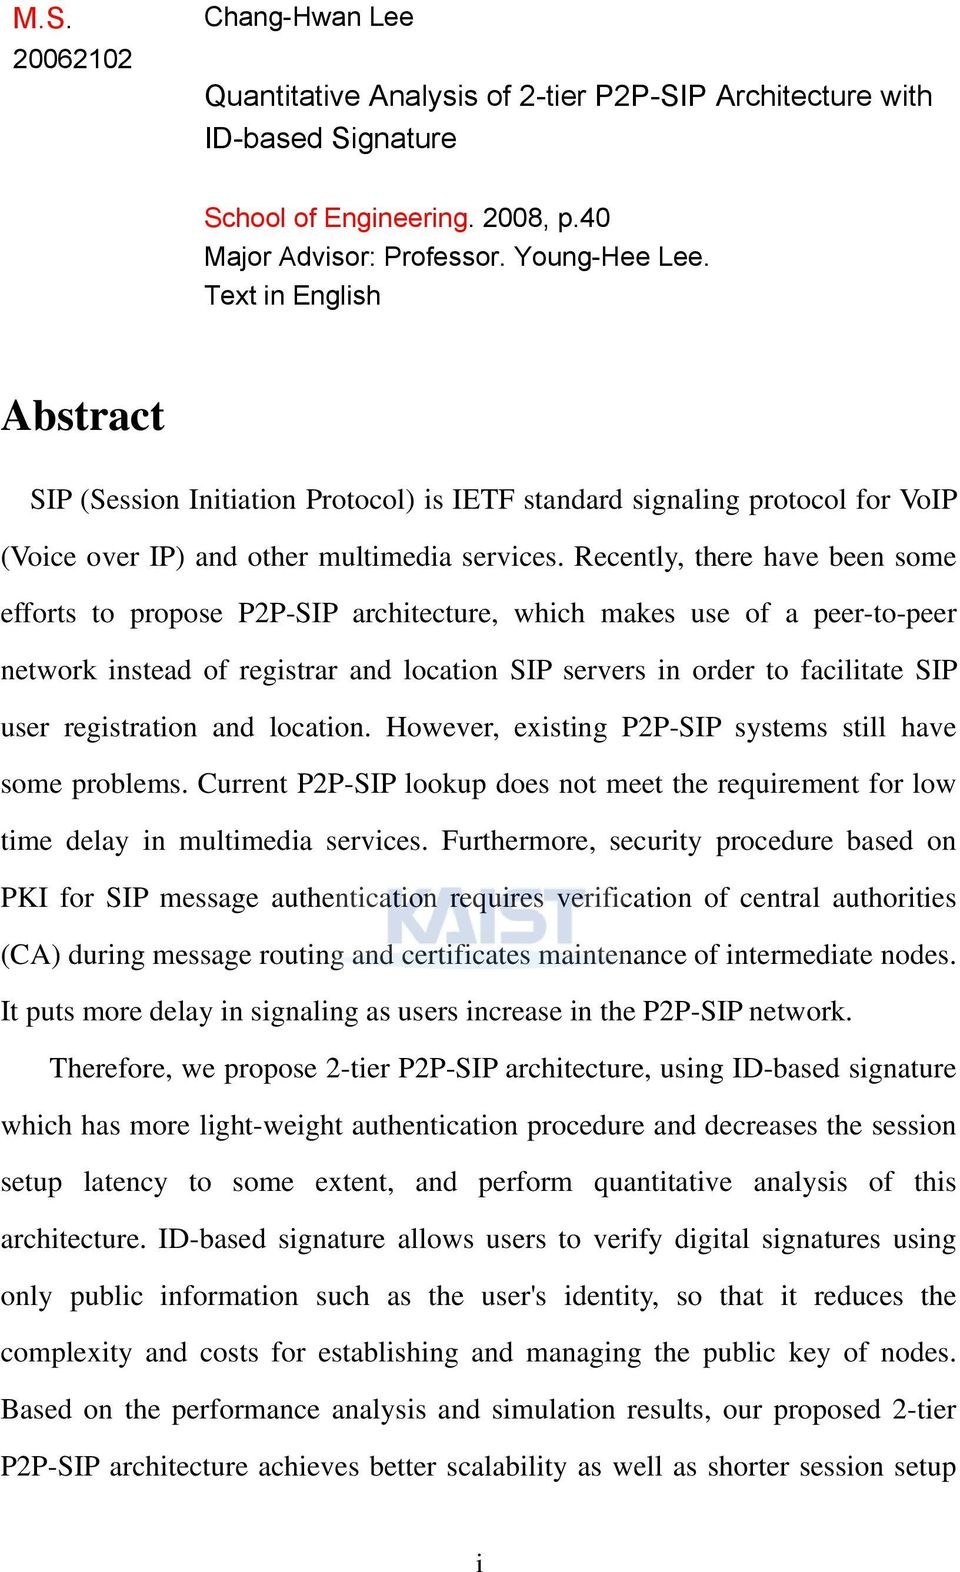 Recently, there have been some efforts to propose P2P-SIP architecture, which makes use of a peer-to-peer network instead of registrar and location SIP servers in order to facilitate SIP user